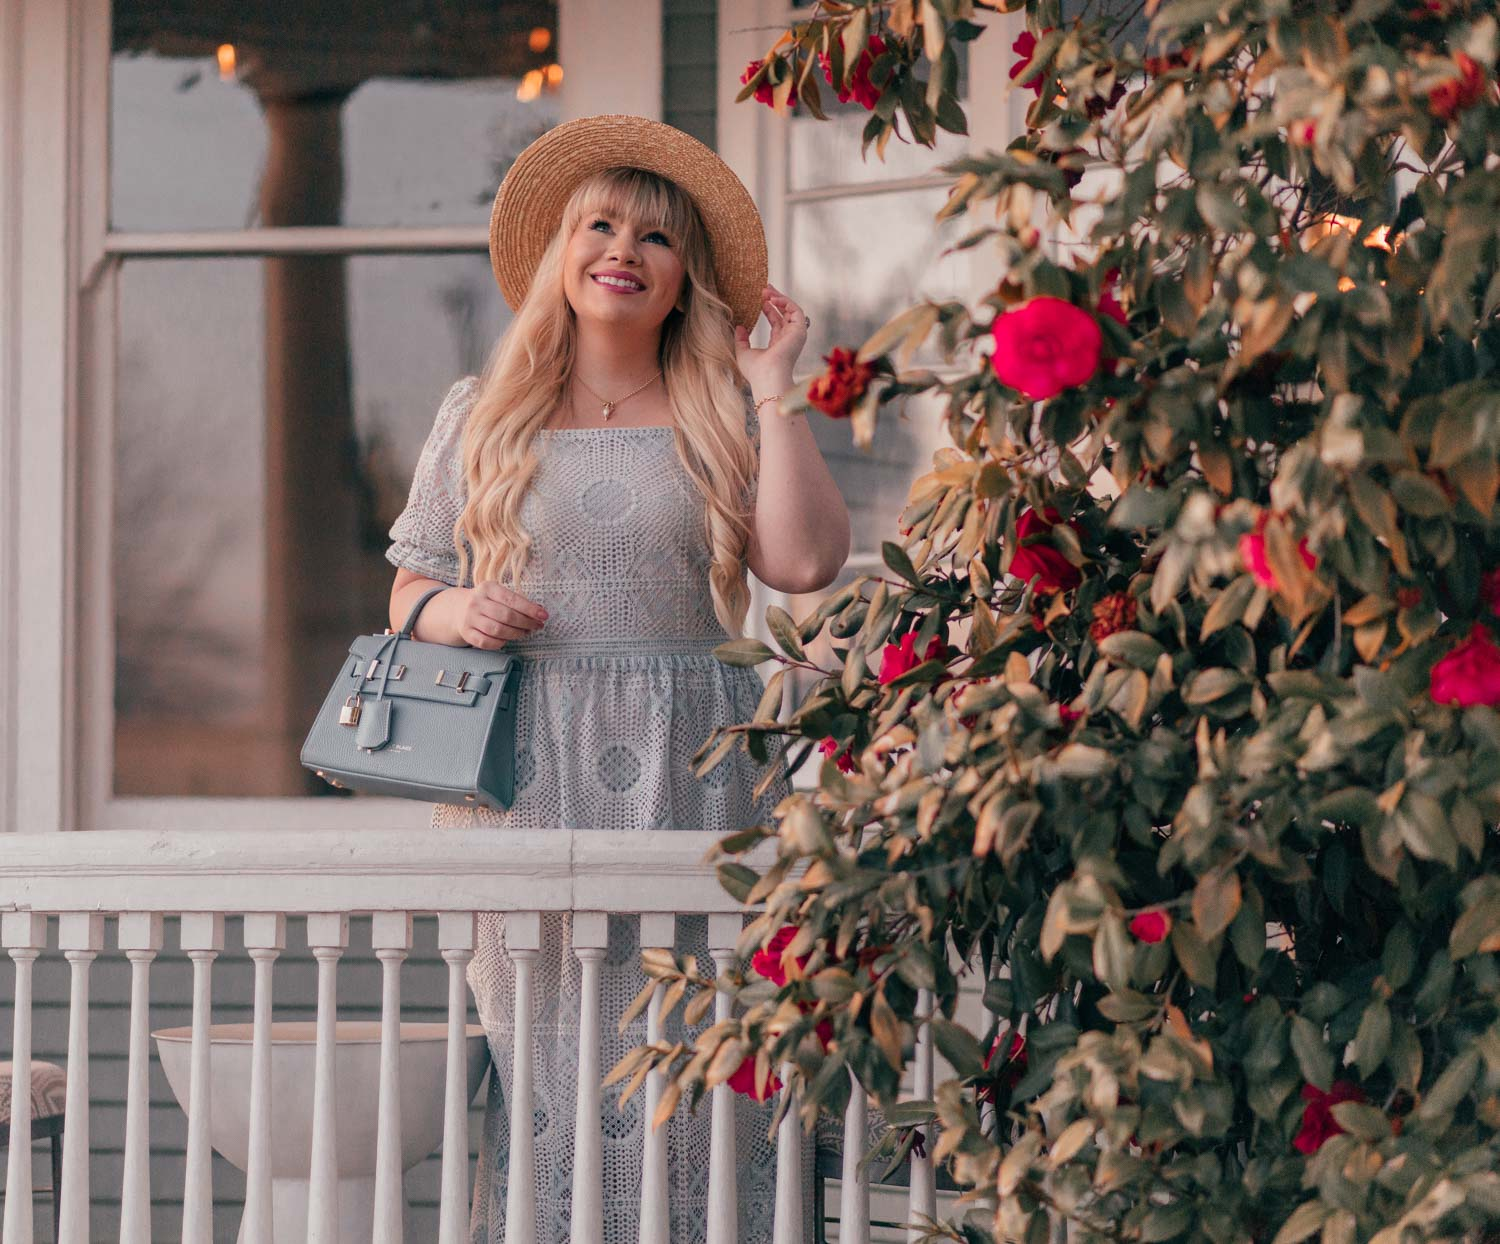 Girly Fashion Blogger Elizabeth Hugen of Lizzie in Lace shares a Feminine Cottagecore Outfit Idea for Spring including this light blue lace Elie Tahari dress